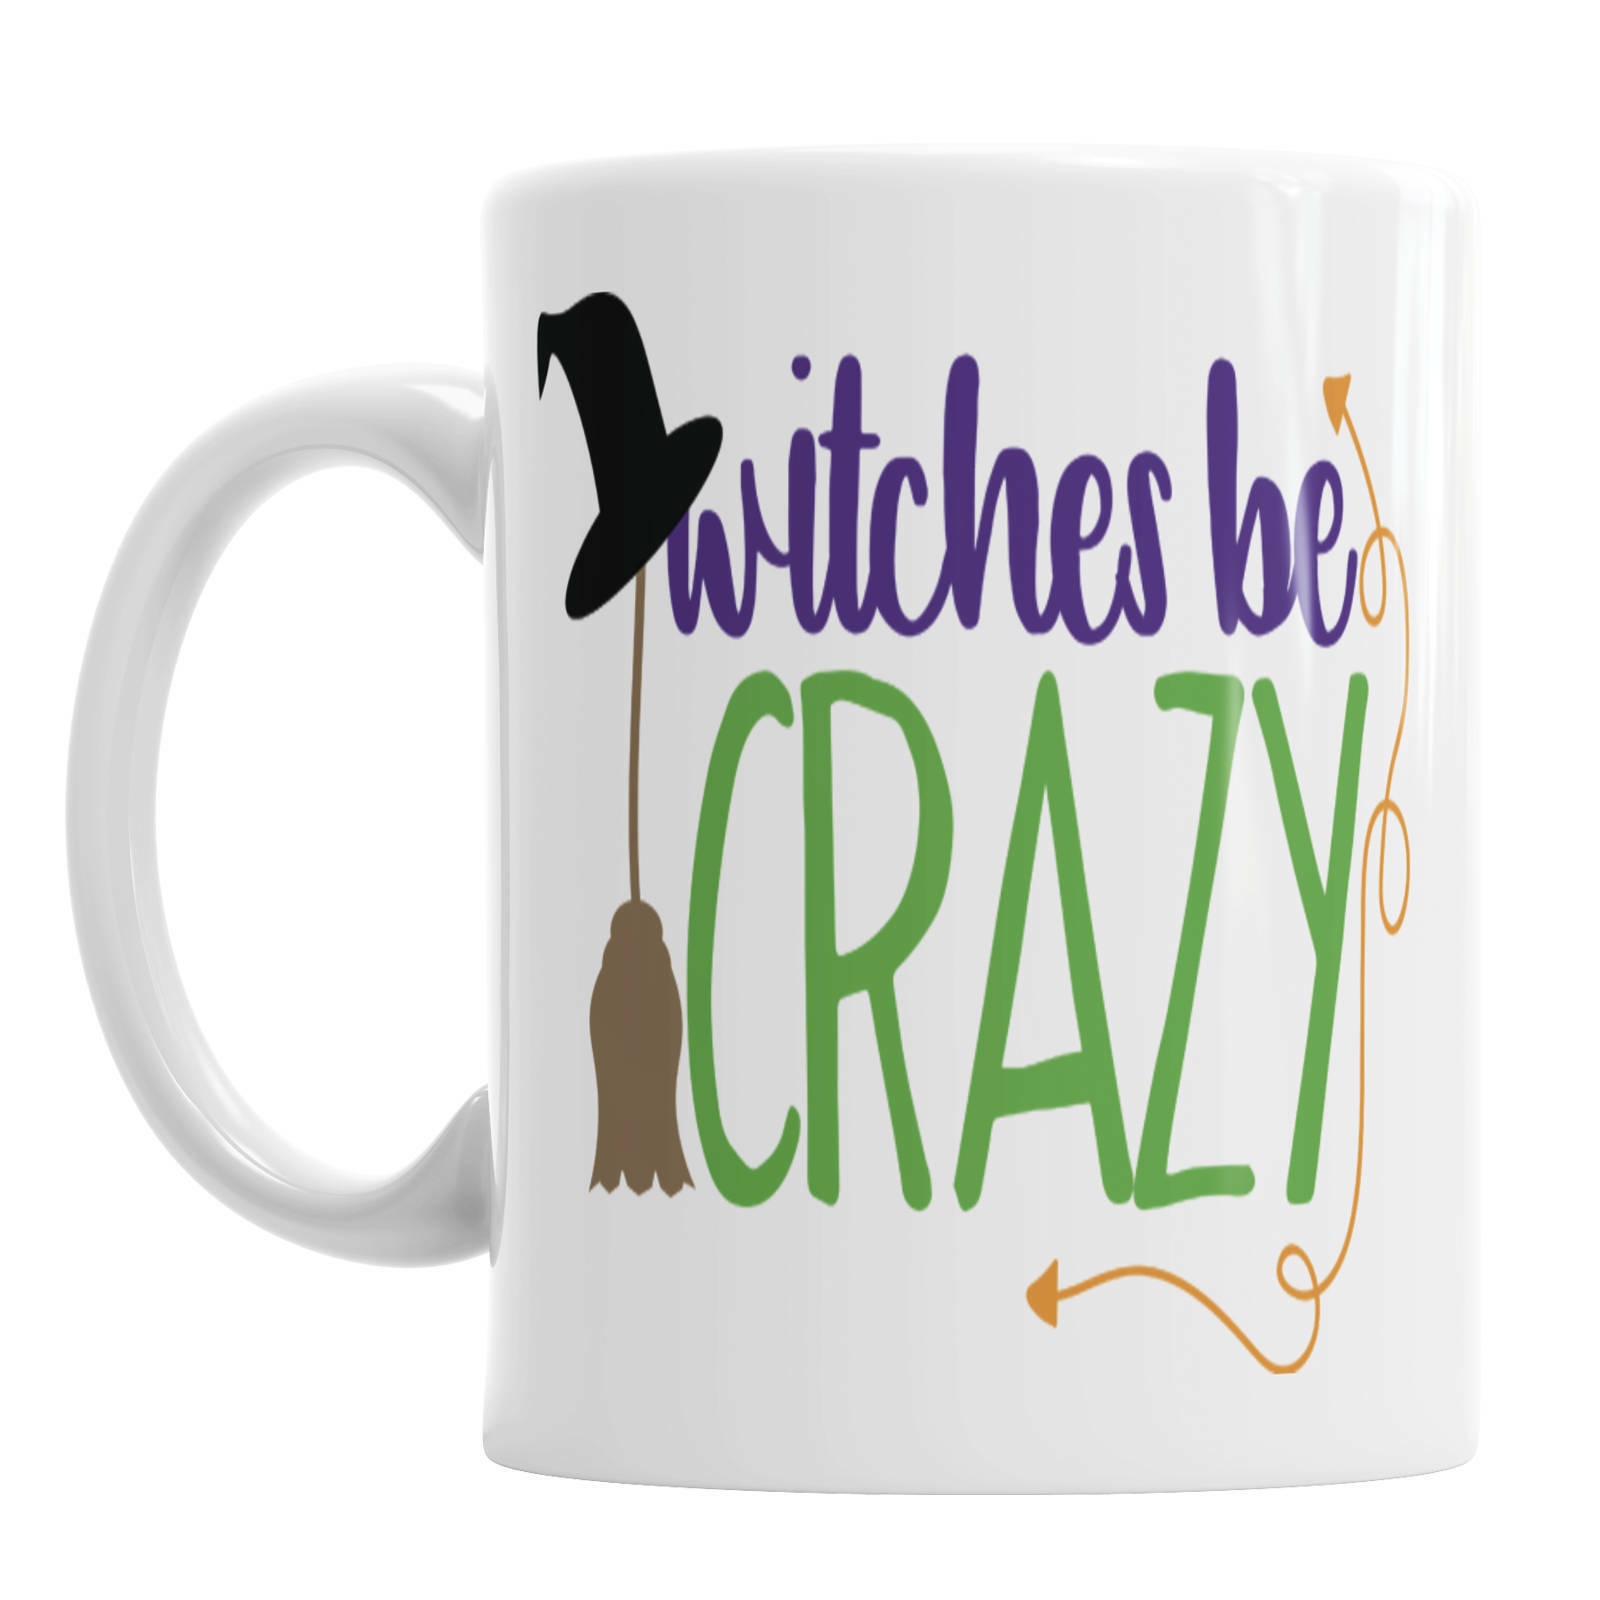 Witches Be Crazy Witches Be Crazy Mug Halloween Mugs Fun Halloween Mug Witches - $13.99